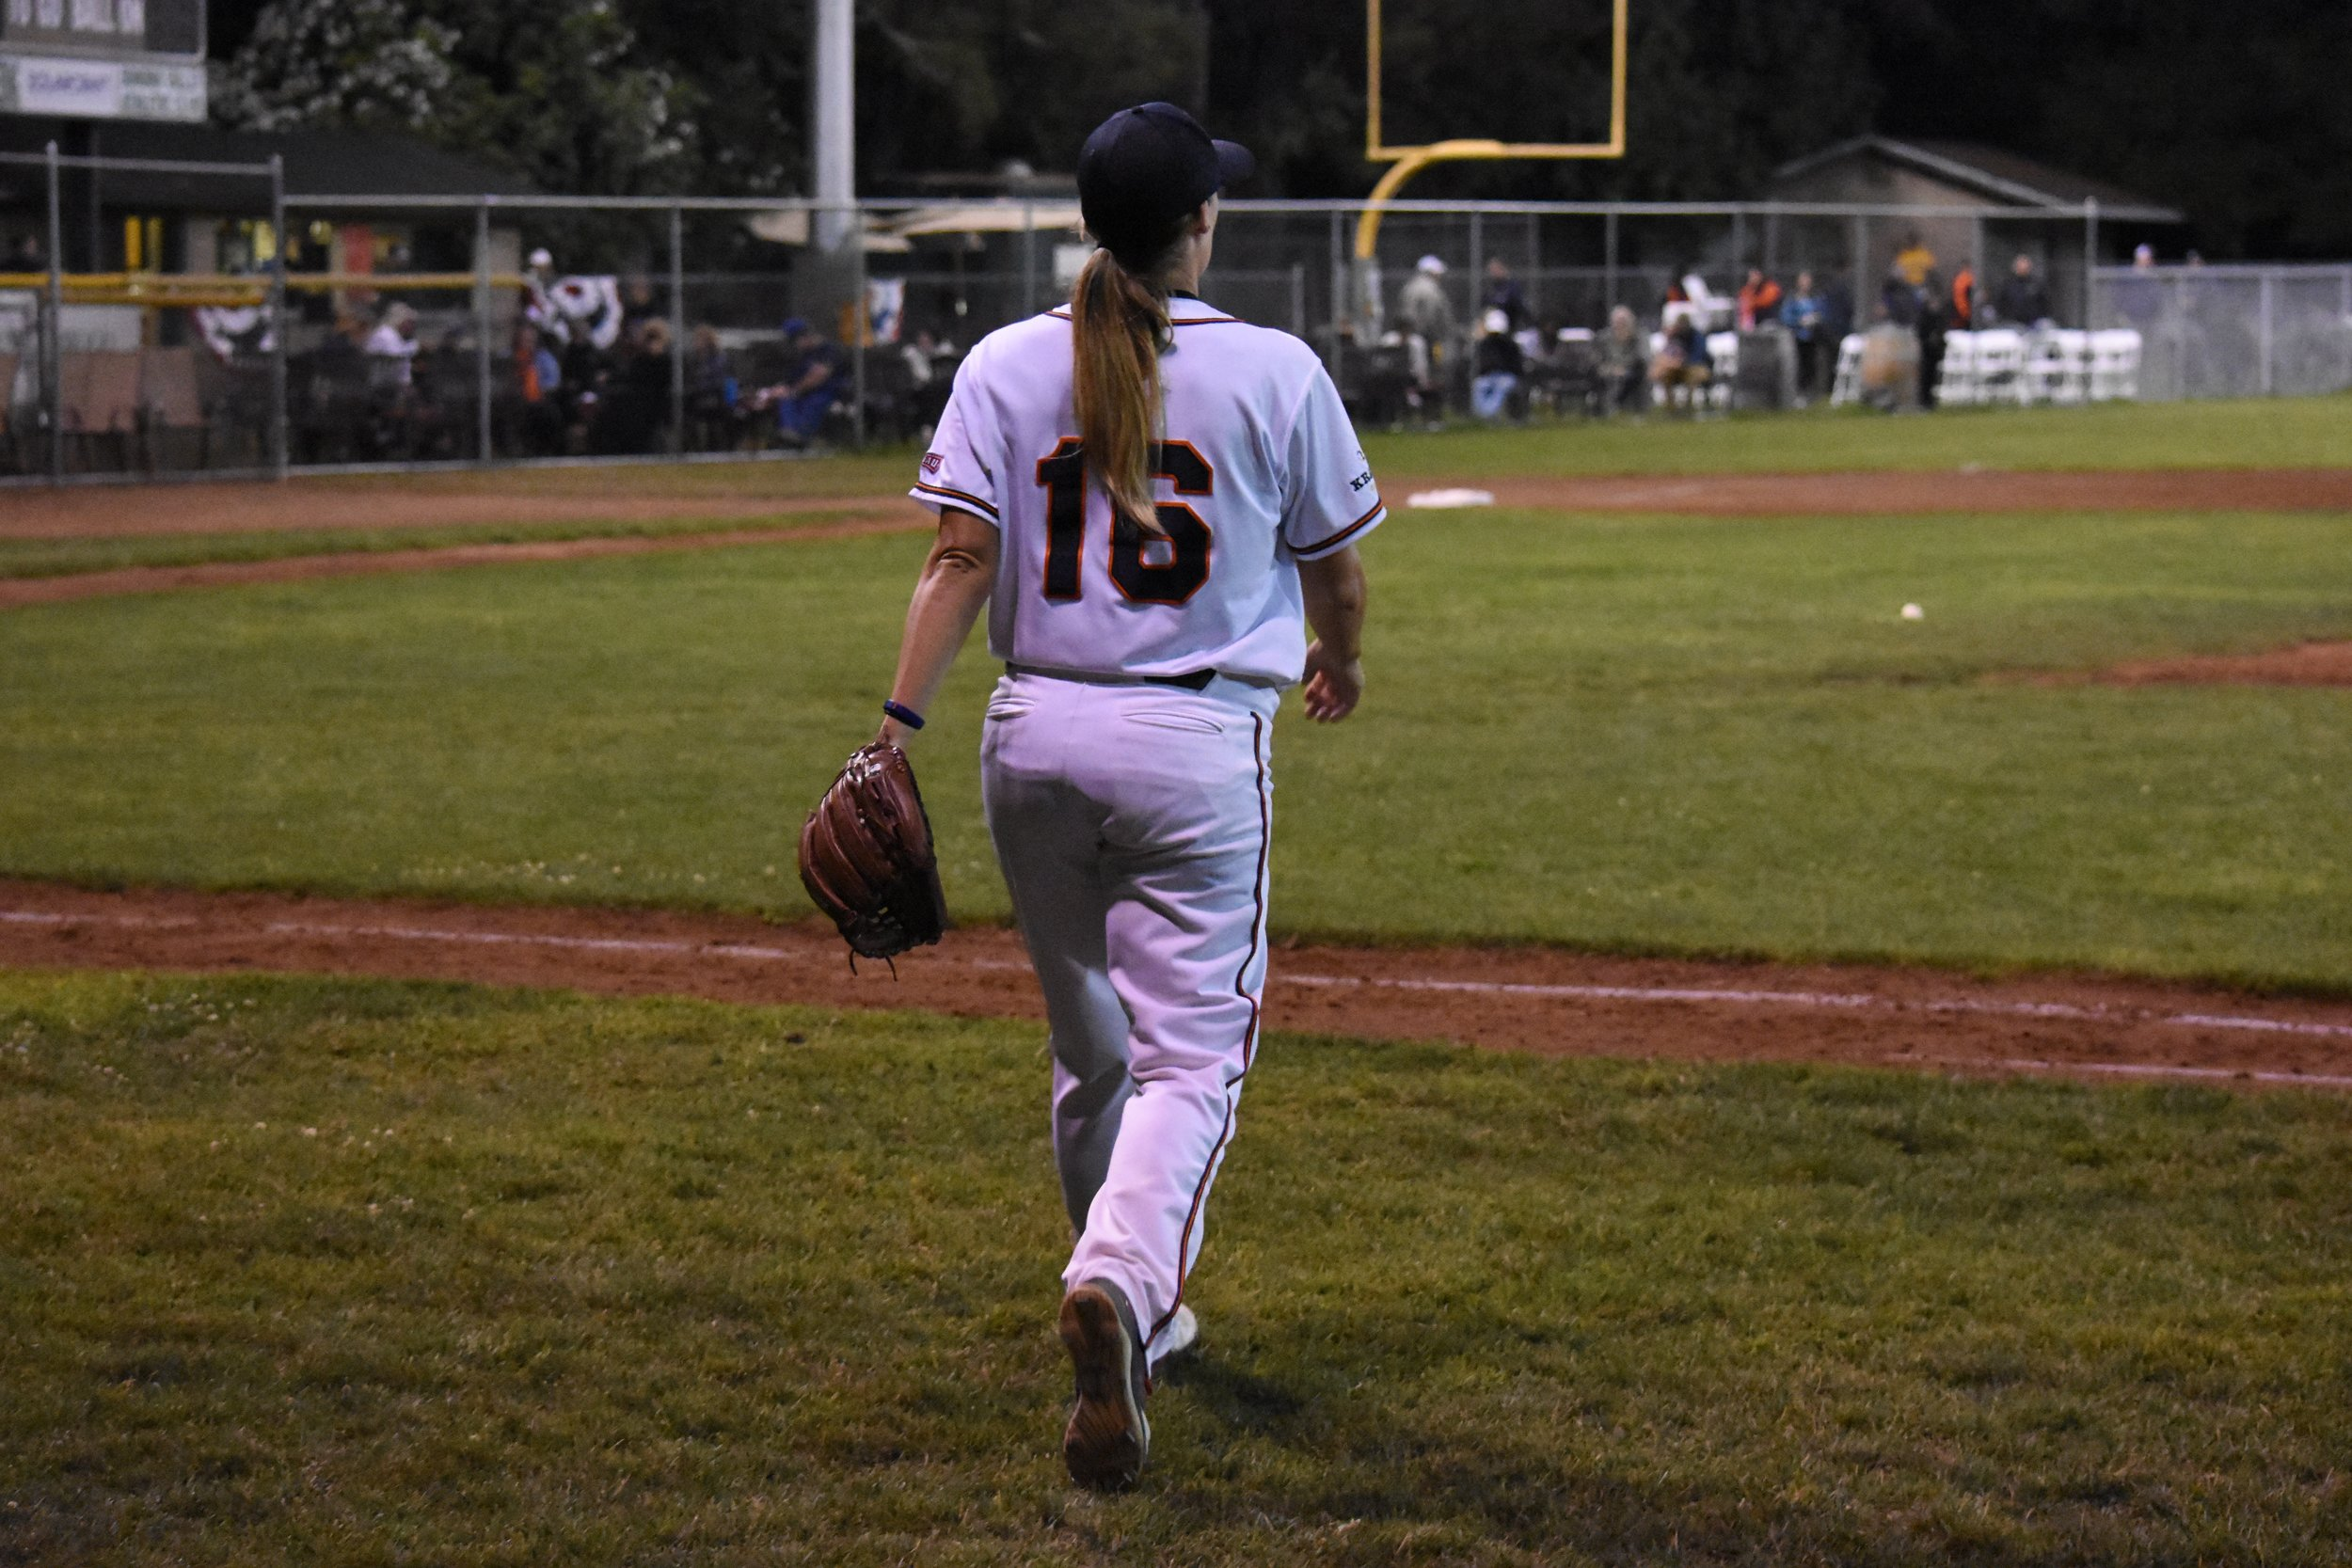 Stacy Piagno takes the mound during Saturday's 6-2 loss to the Vallejo Admirals at Peoples Home Equity Ballpark at Arnold Field. (James W. Toy III / Sonoma Stompers)